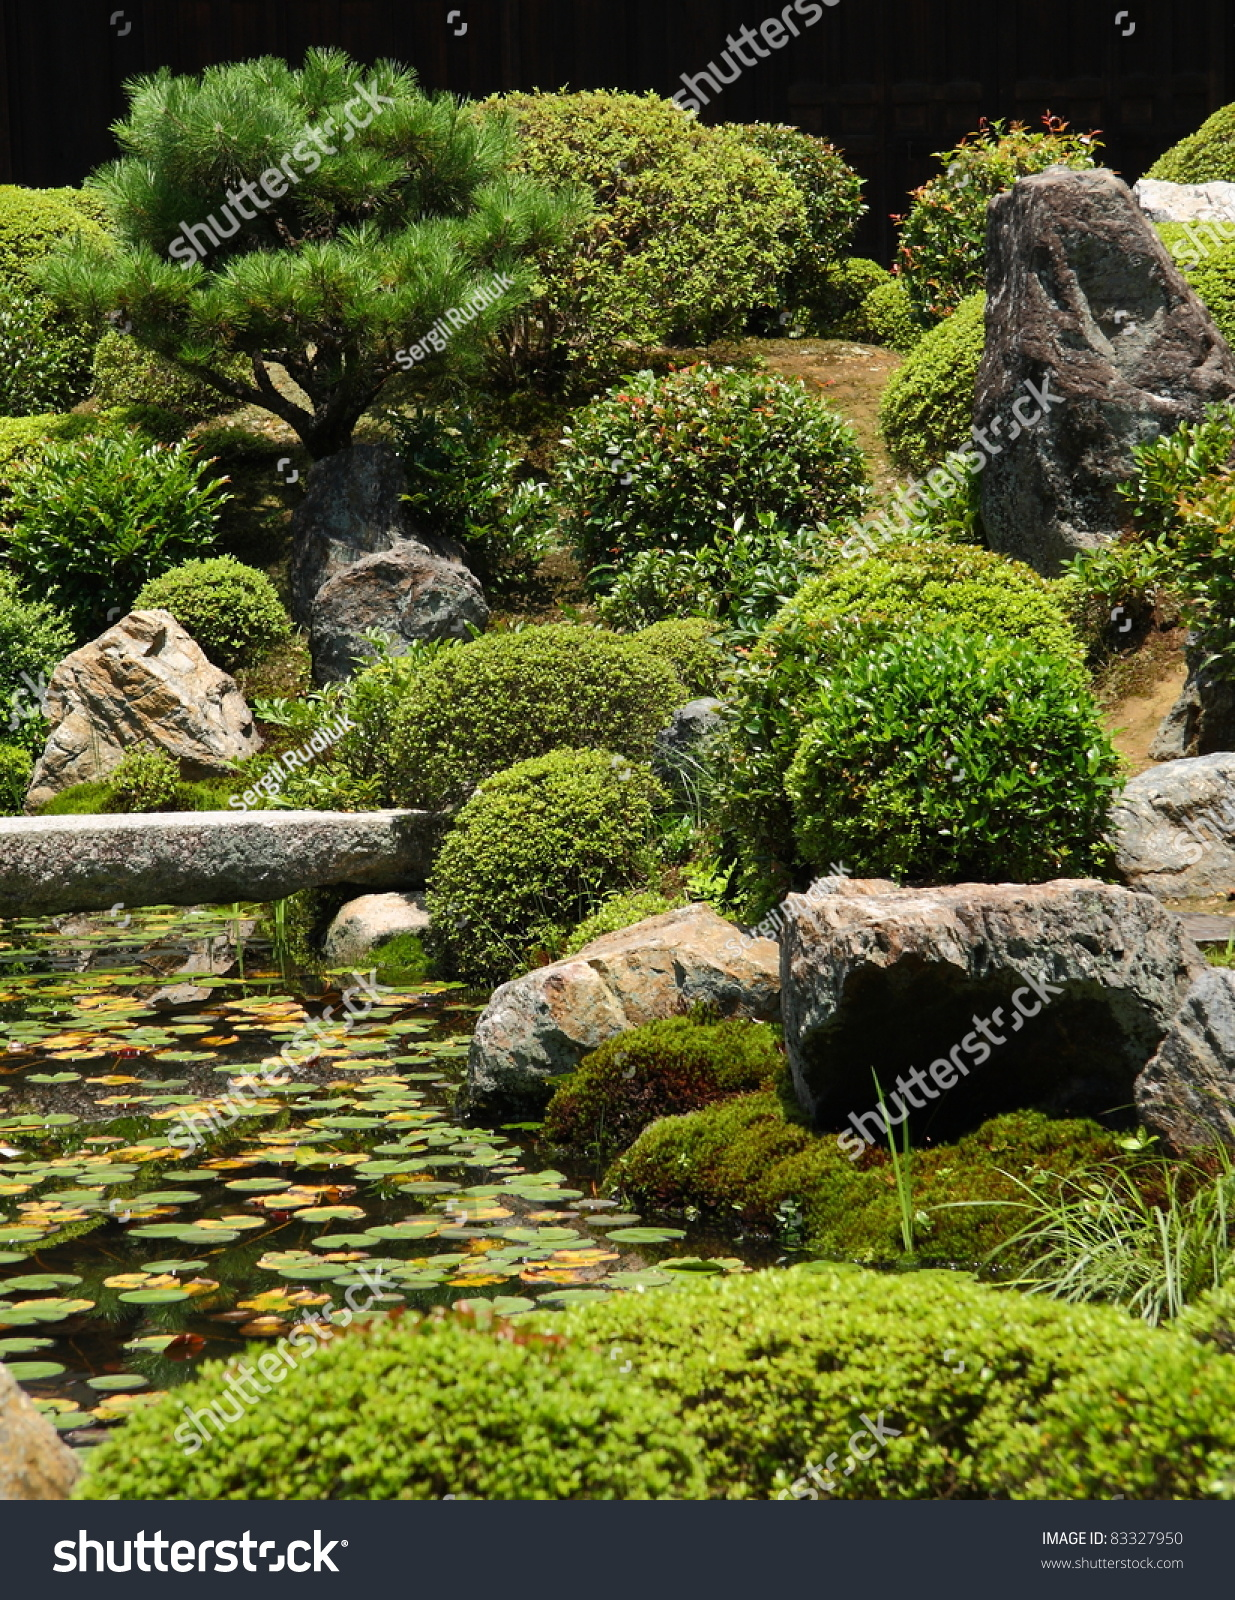 nice japanese garden with a stone bridge preview save to a lightbox